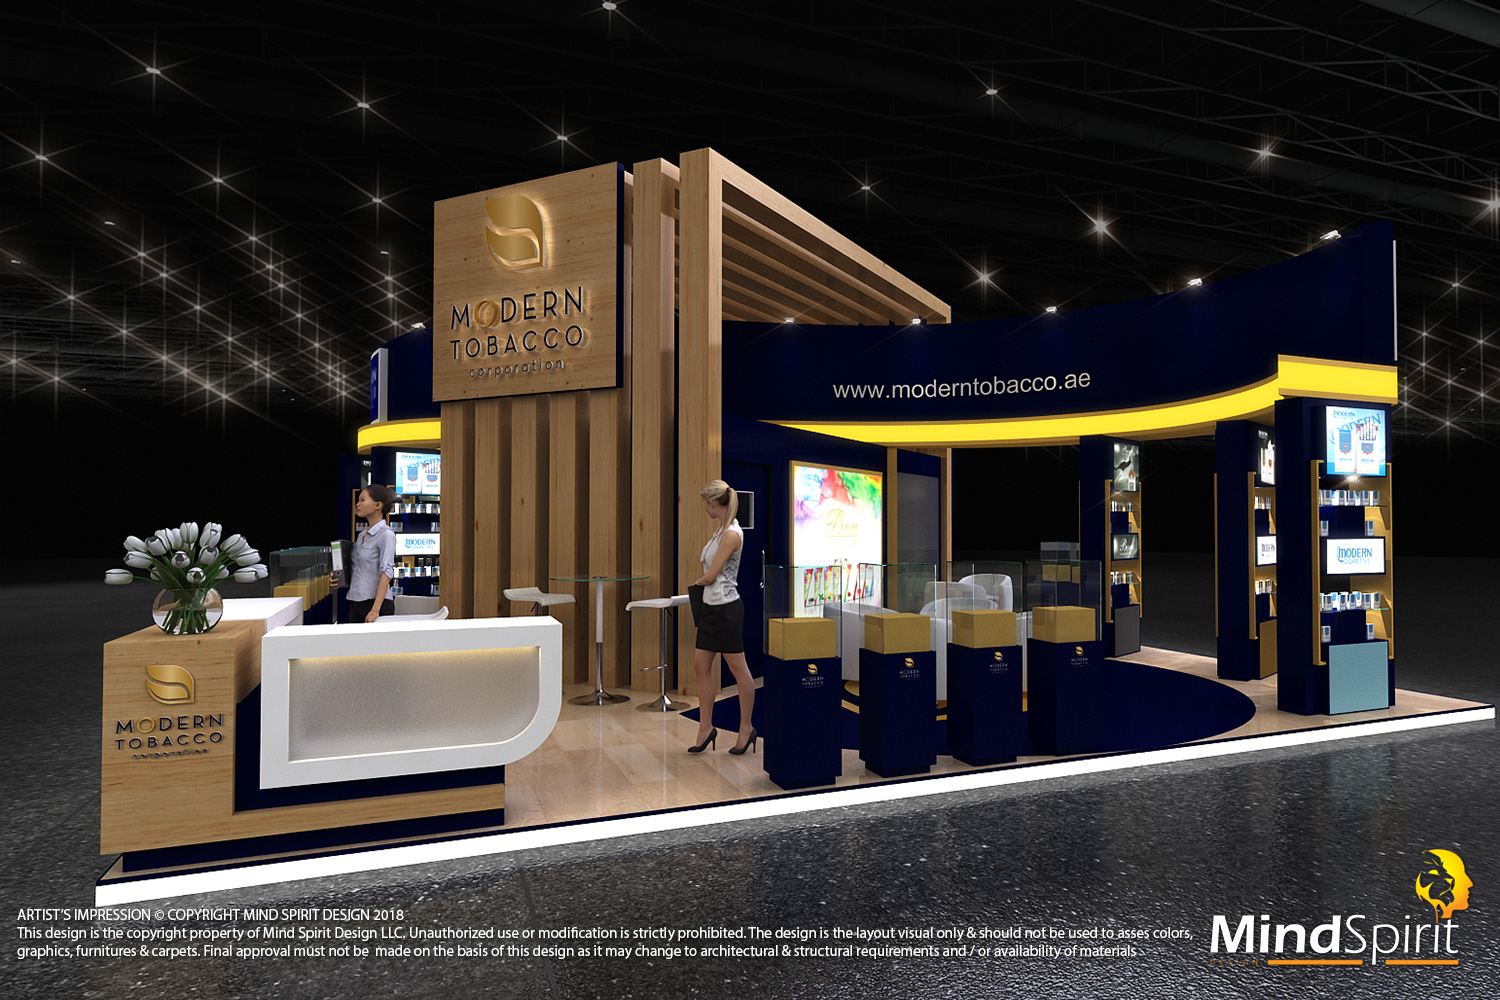 Exhibition Stand Design Decor : Inspiring change custom exhibition stand design mind spirit design